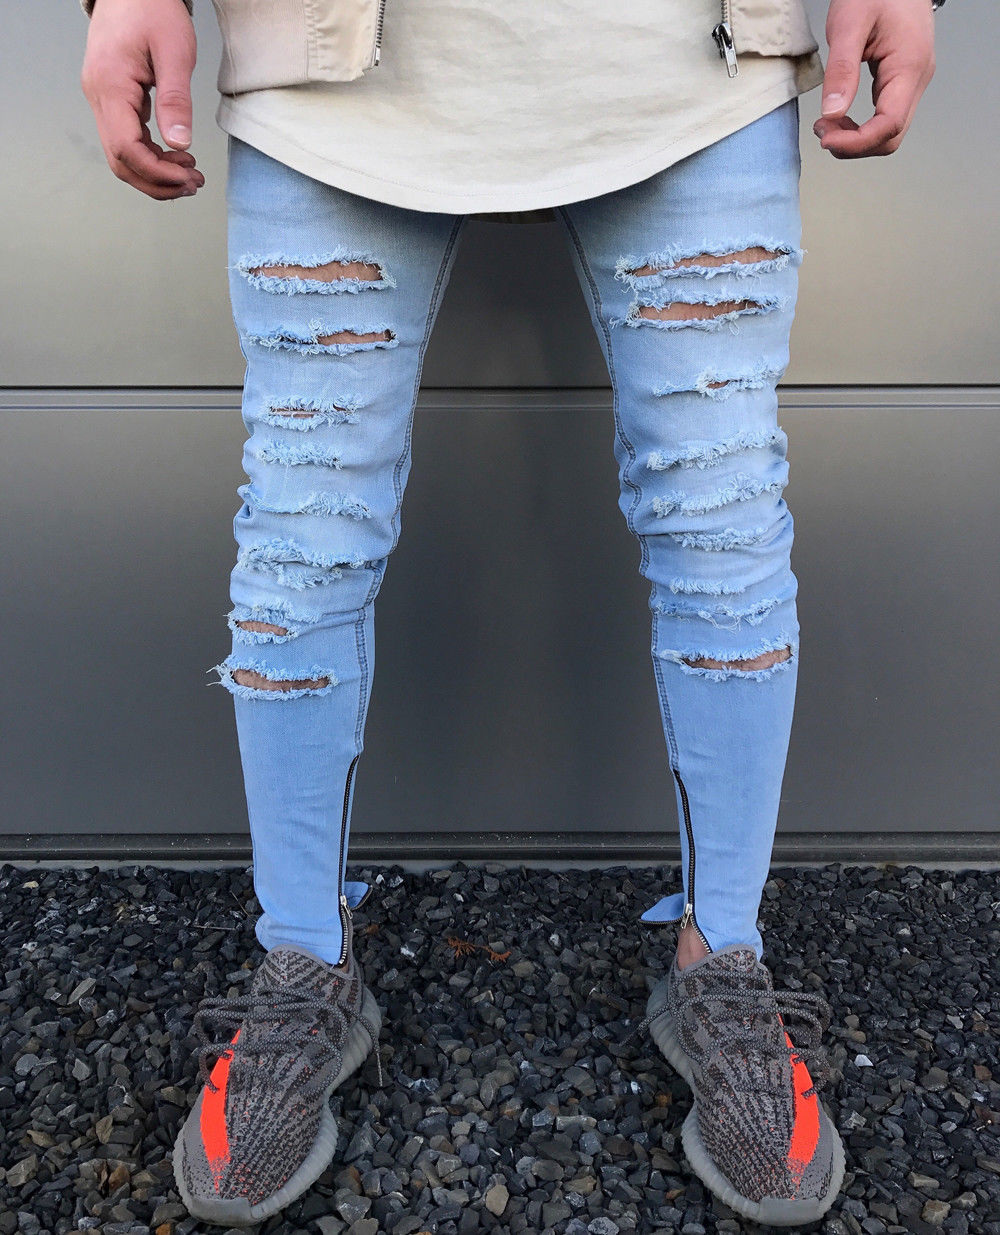 Fashion Men Ripped Skinny Hole Jeans Destroyed Frayed Slim Fit Denim Pants Stylish Mens Fake Zipper Pencil Denim Jeans summer style men jeans blue color denim destroyed ripped jeans men high quality skinny slim fit biker jeans casual leisure pants